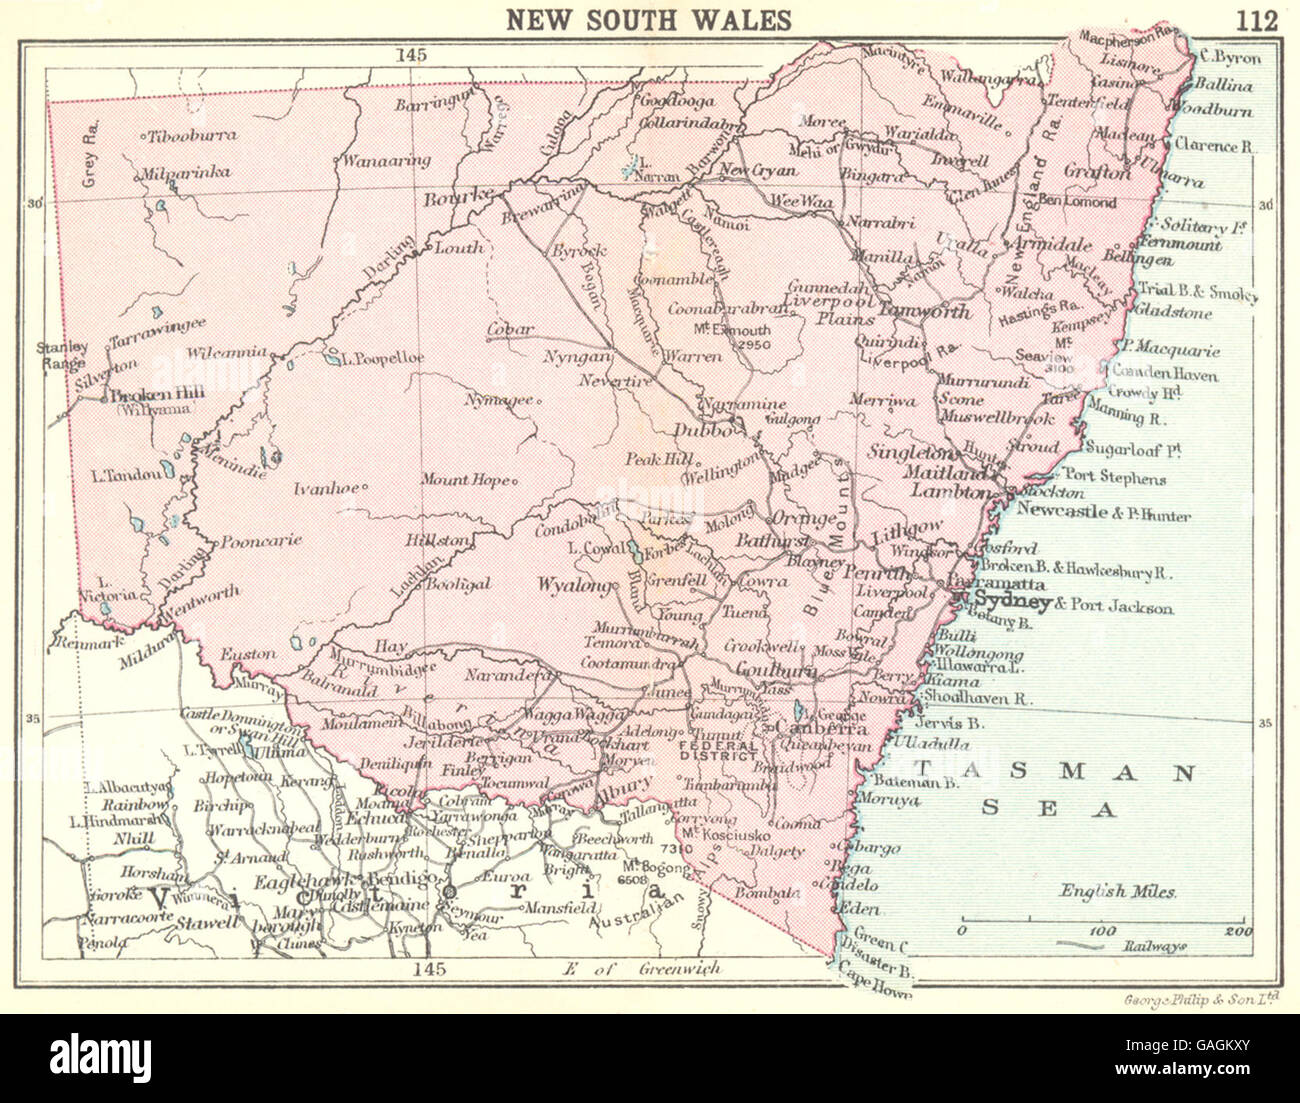 AUSTRALIA: New South Wales; Small map, 1912 - Stock Image